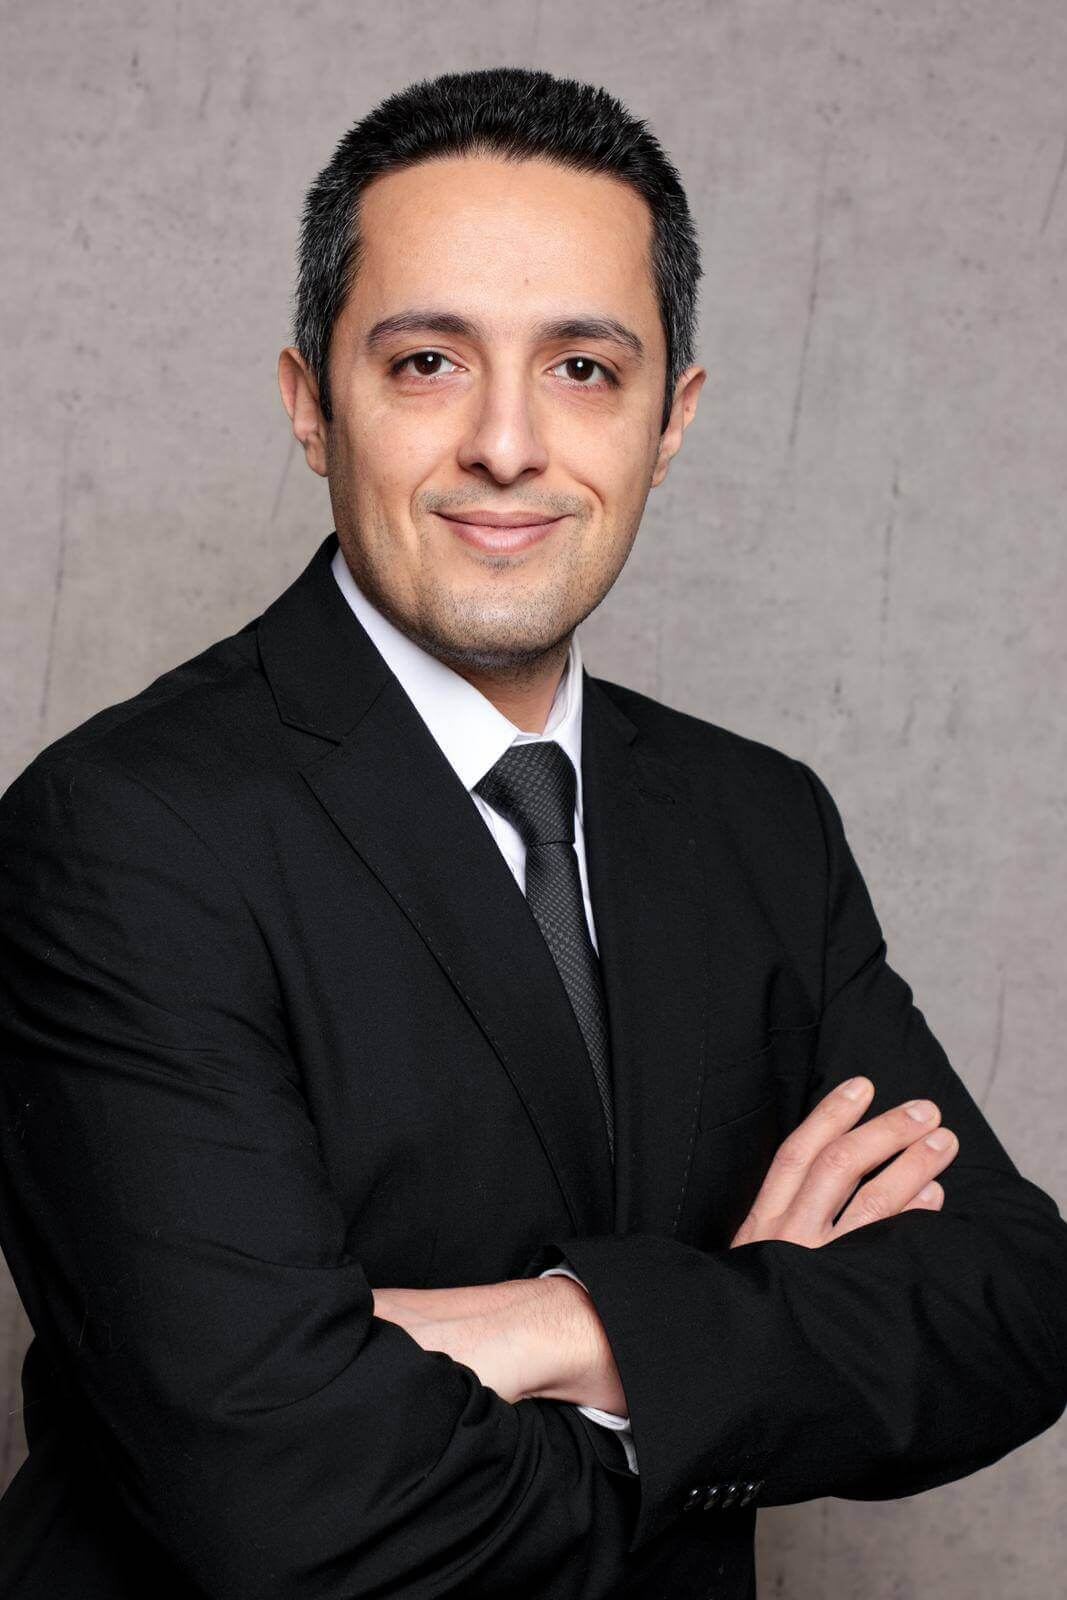 Omid Mohammadpour